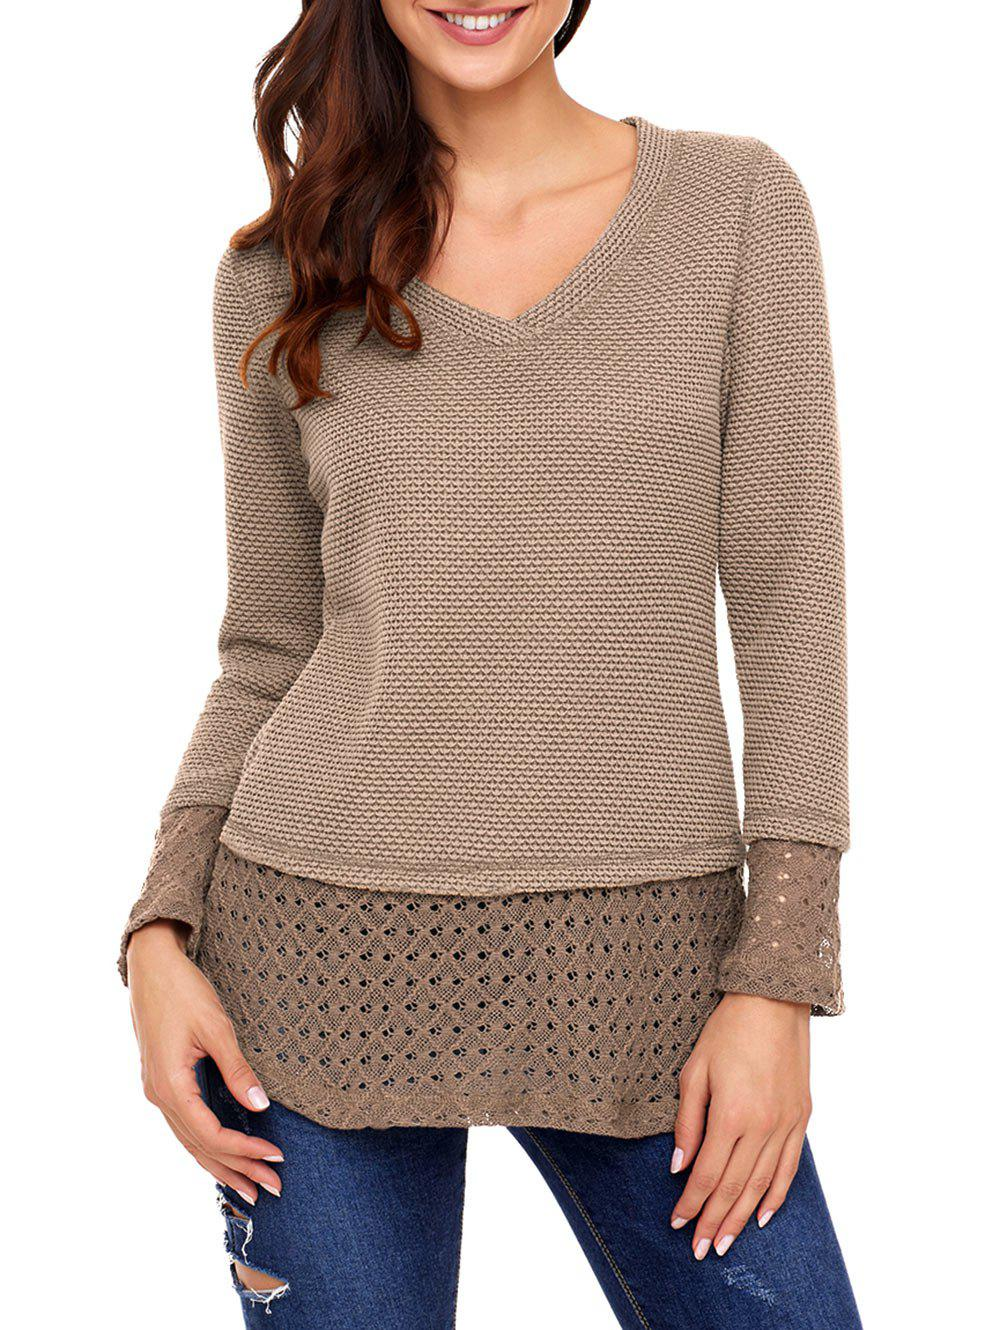 Crochet Trimmed V Neck Knit Top - KHAKI 2XL